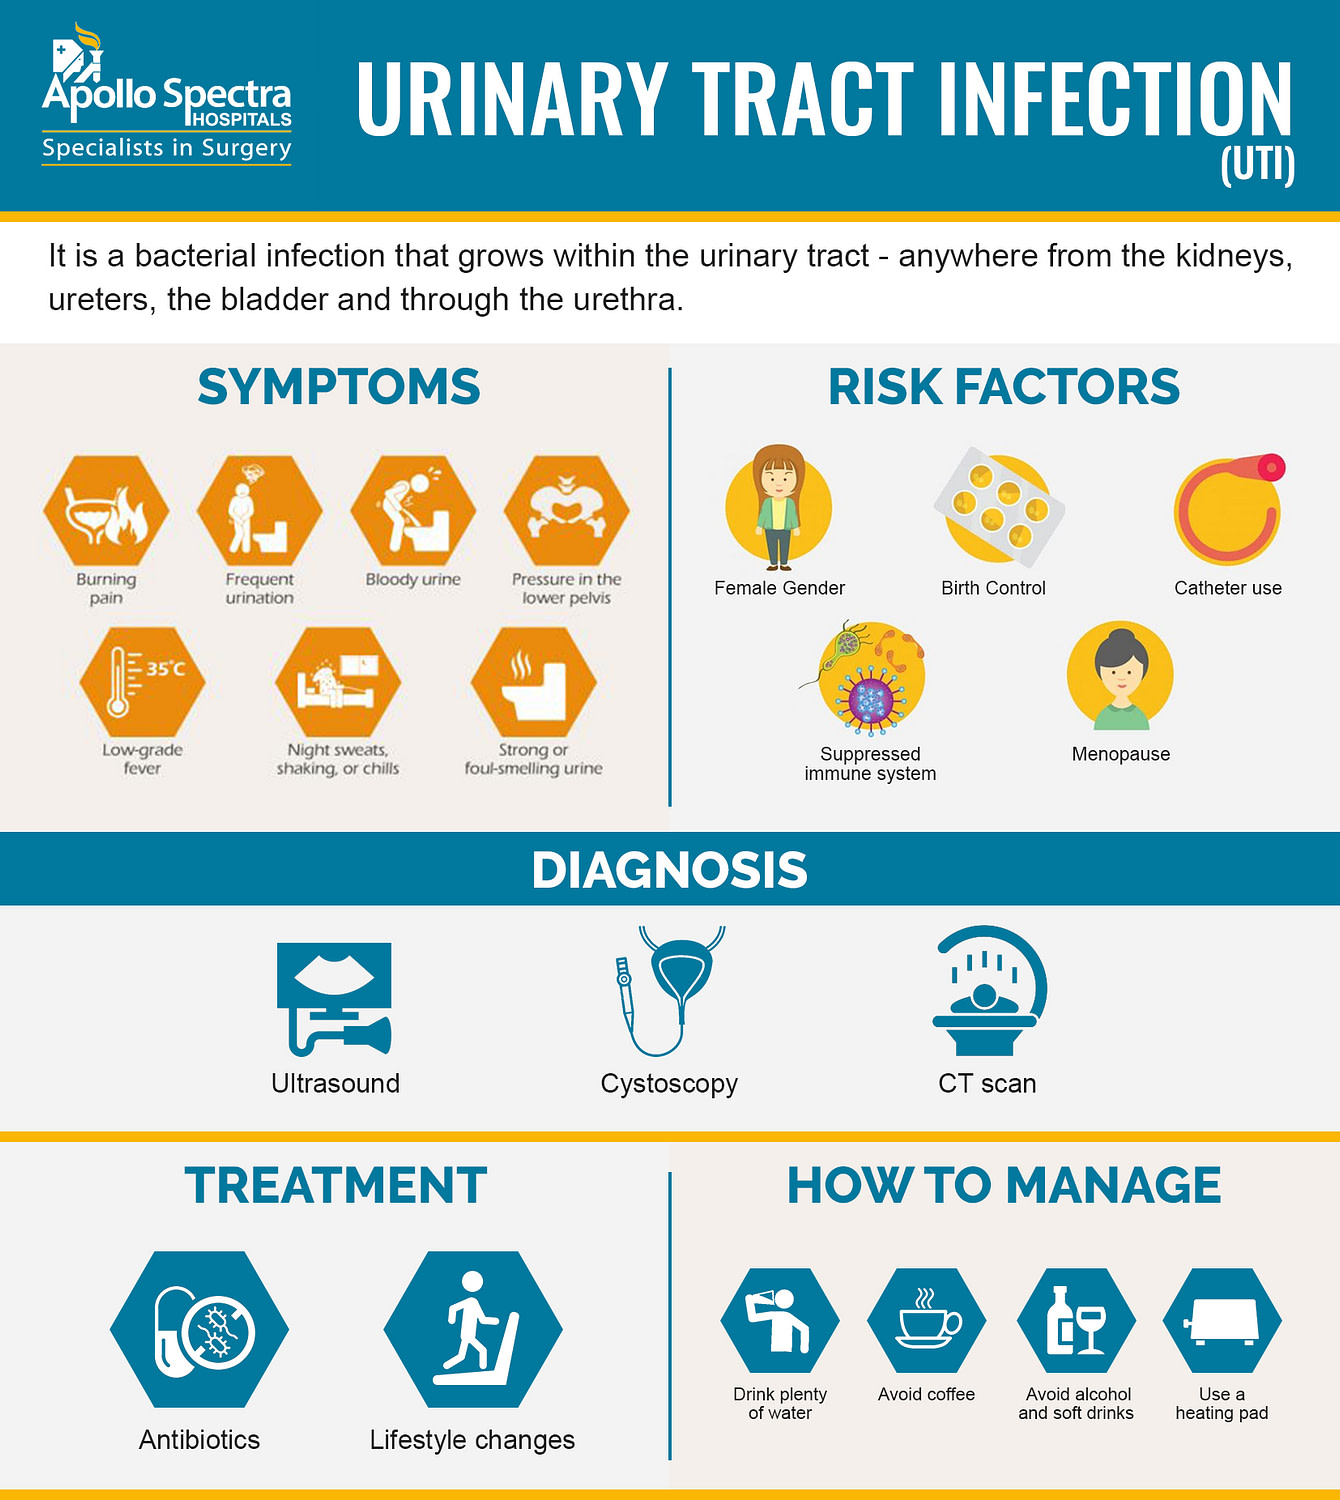 Some helpful hints and information about UTI's